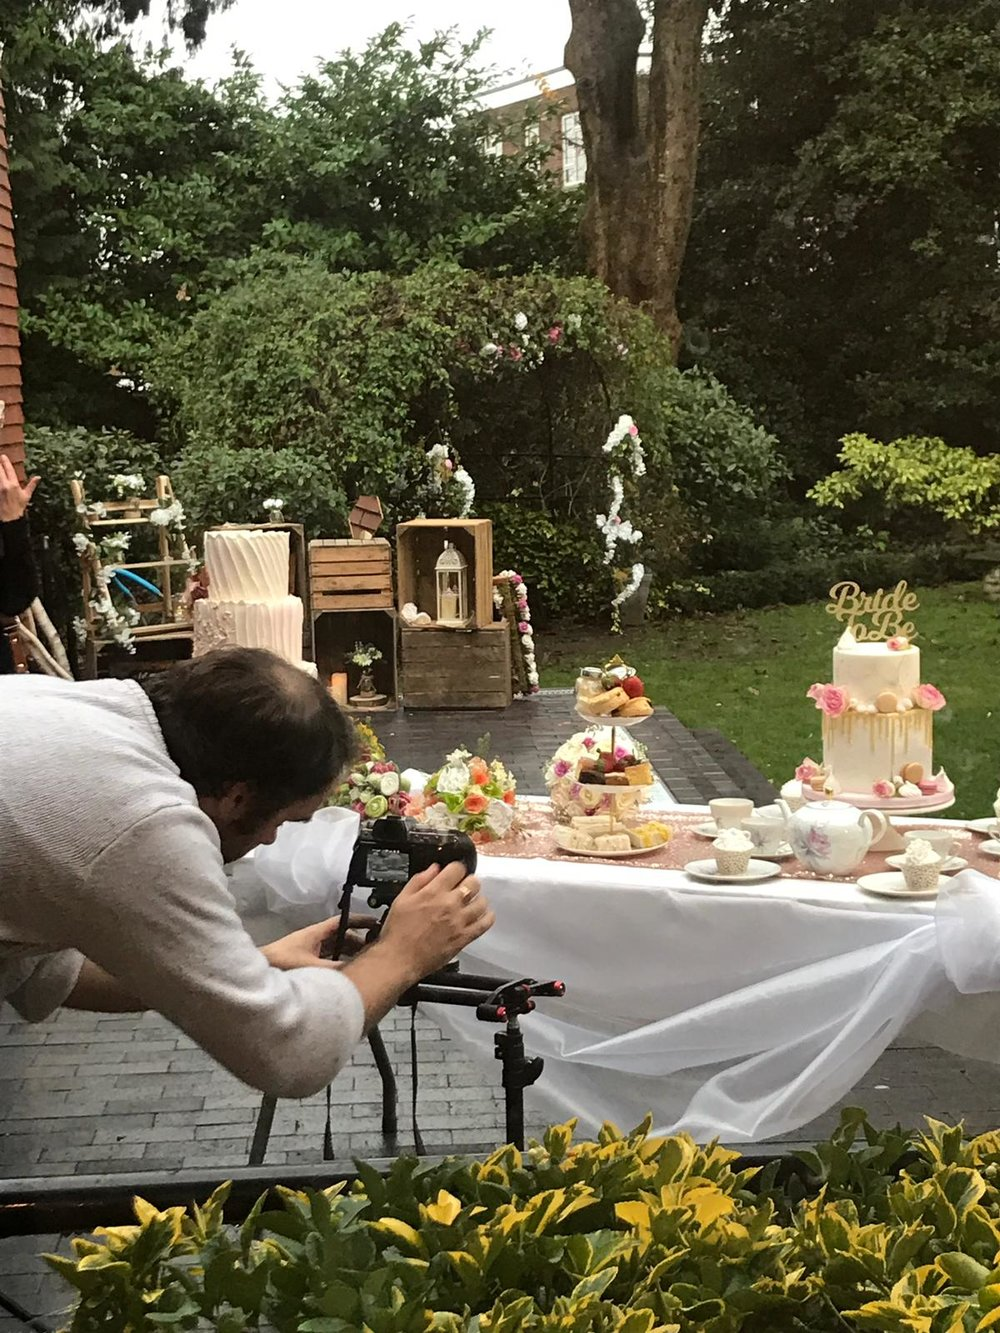 Videography by Colin at Colin D Miller Photography